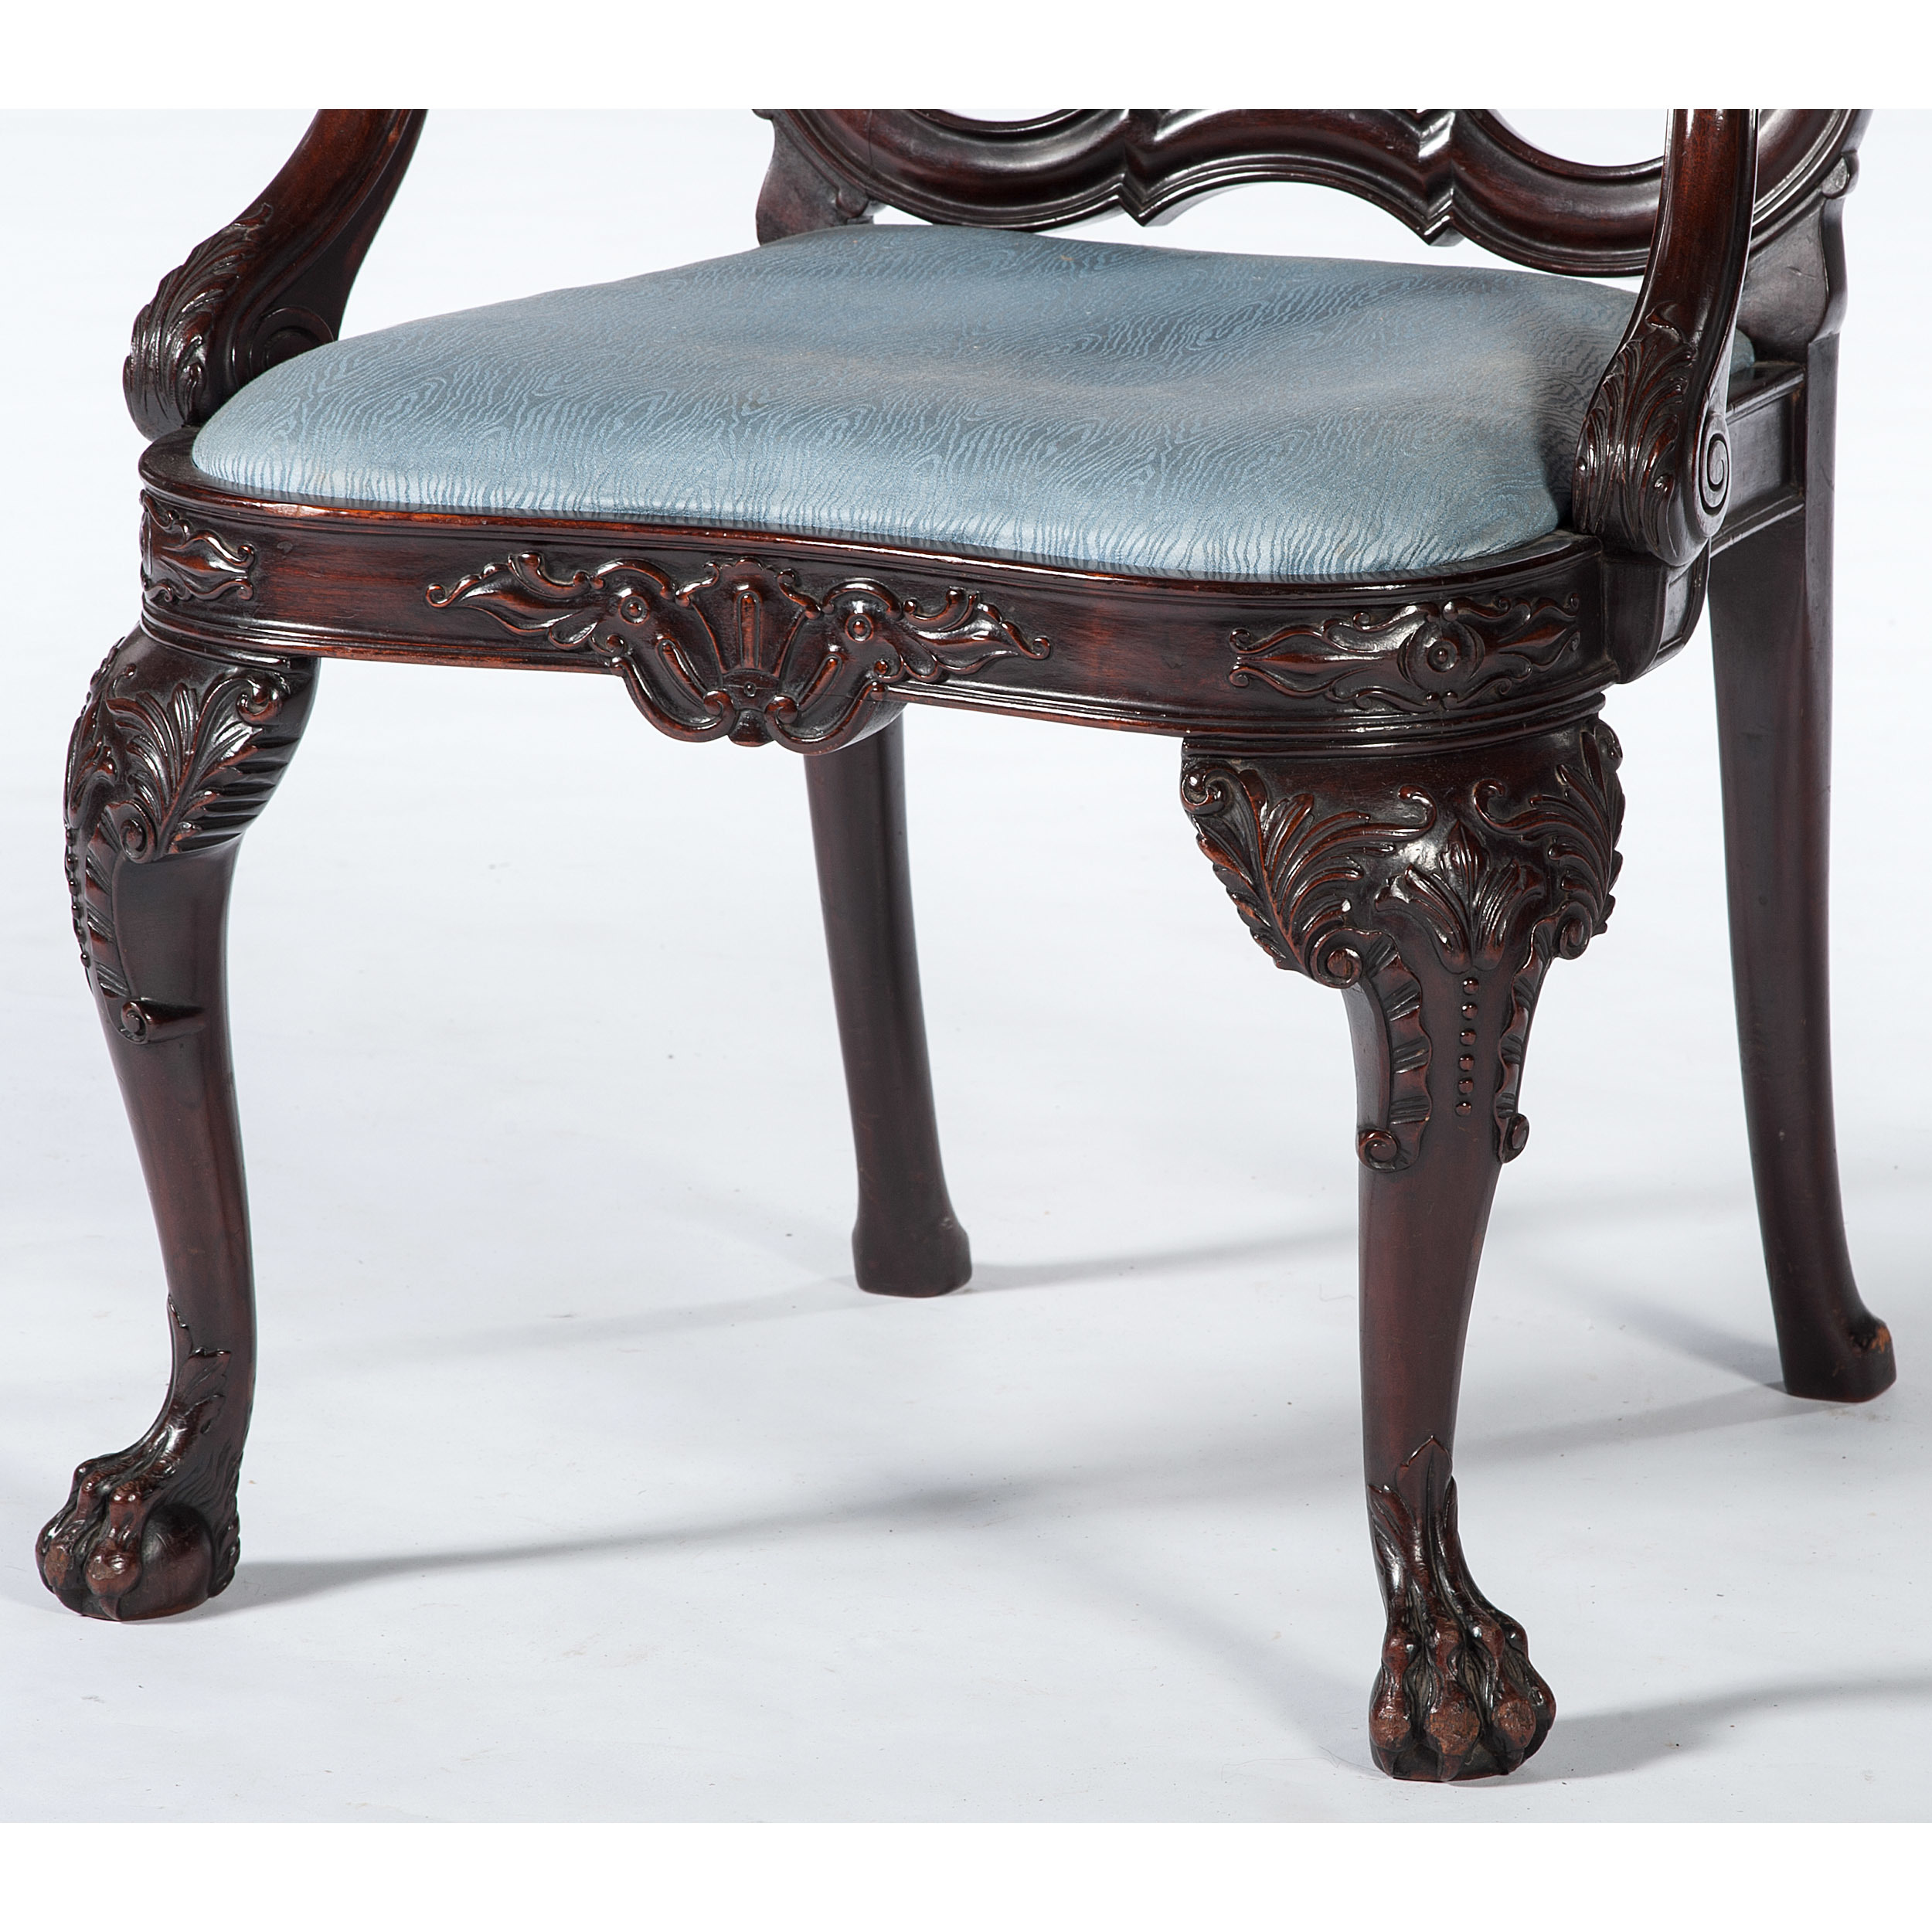 Queen Anne-style Armchair | Cowan's Auction House: The ...